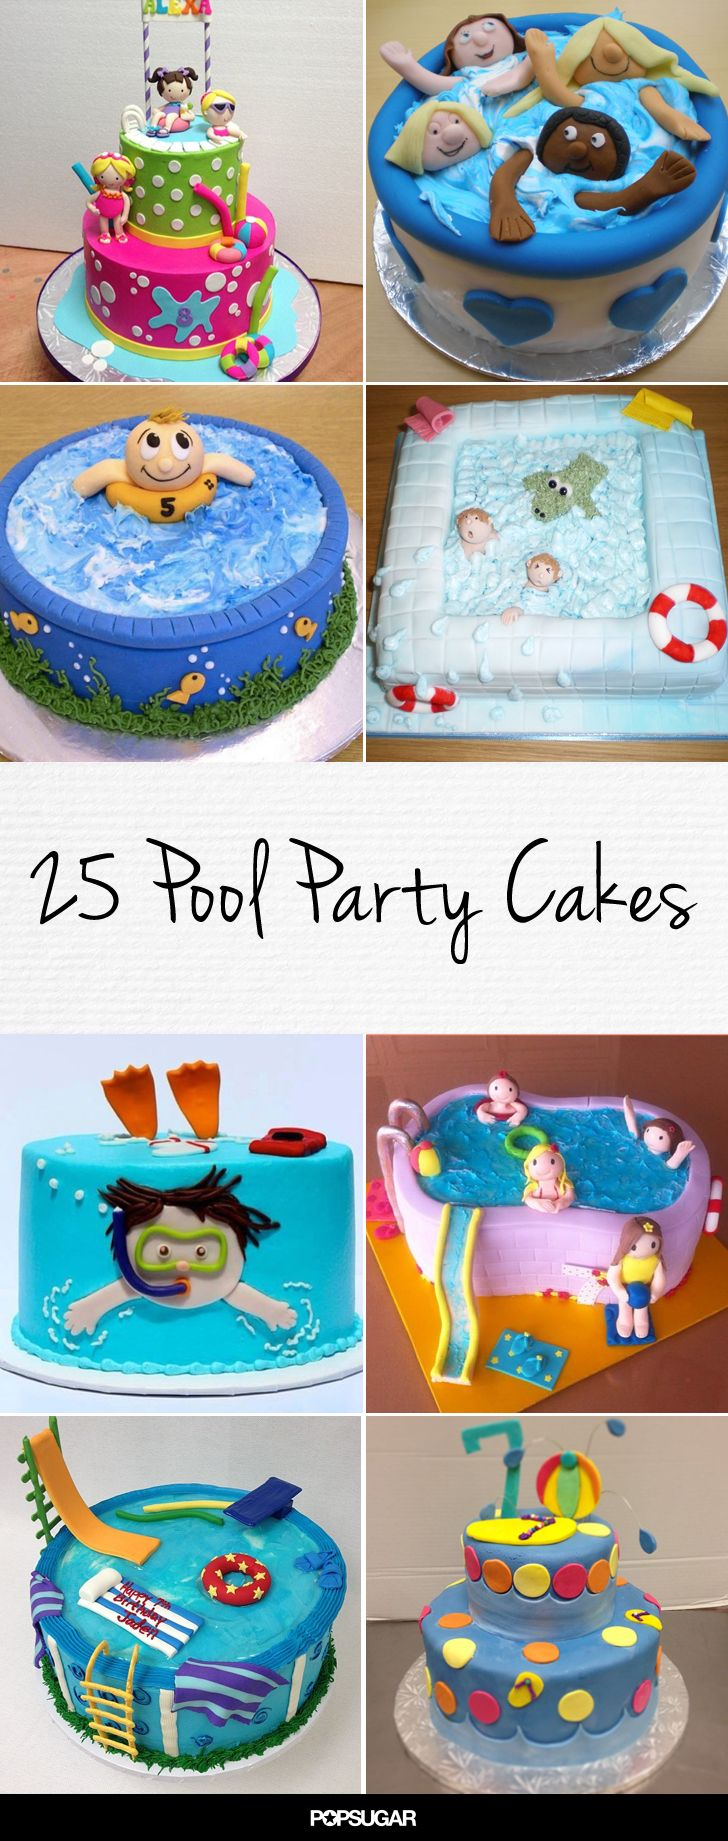 Cake Decorations For Pool Party : 25 Pool Party Cakes That Make a Splash! Cake, Summer and ...